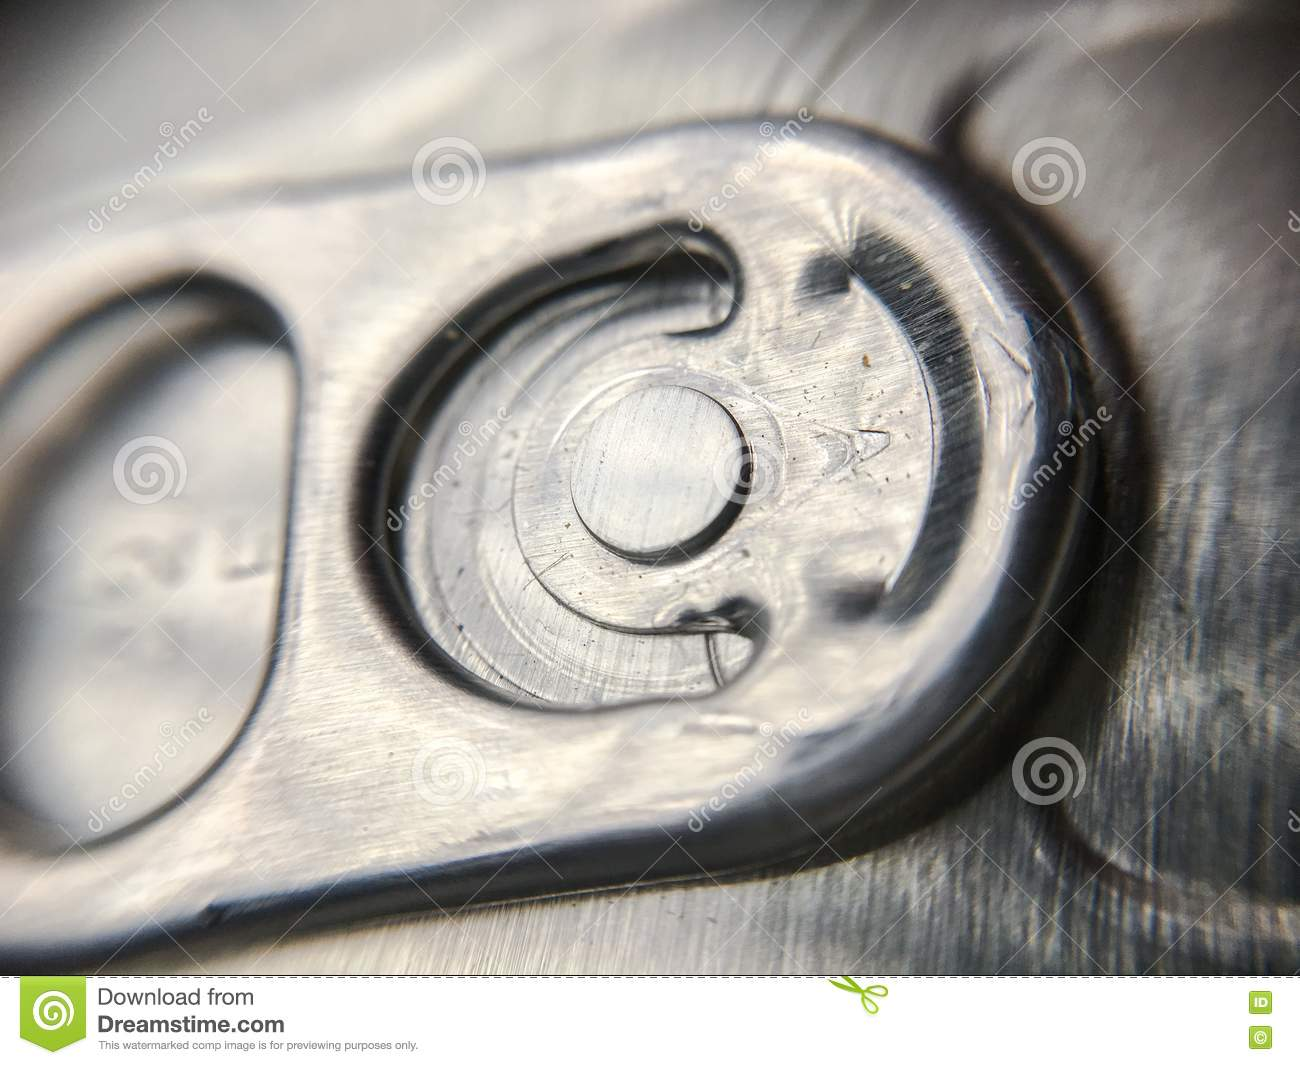 pop tab to open soda can close up stock photo image of open drink